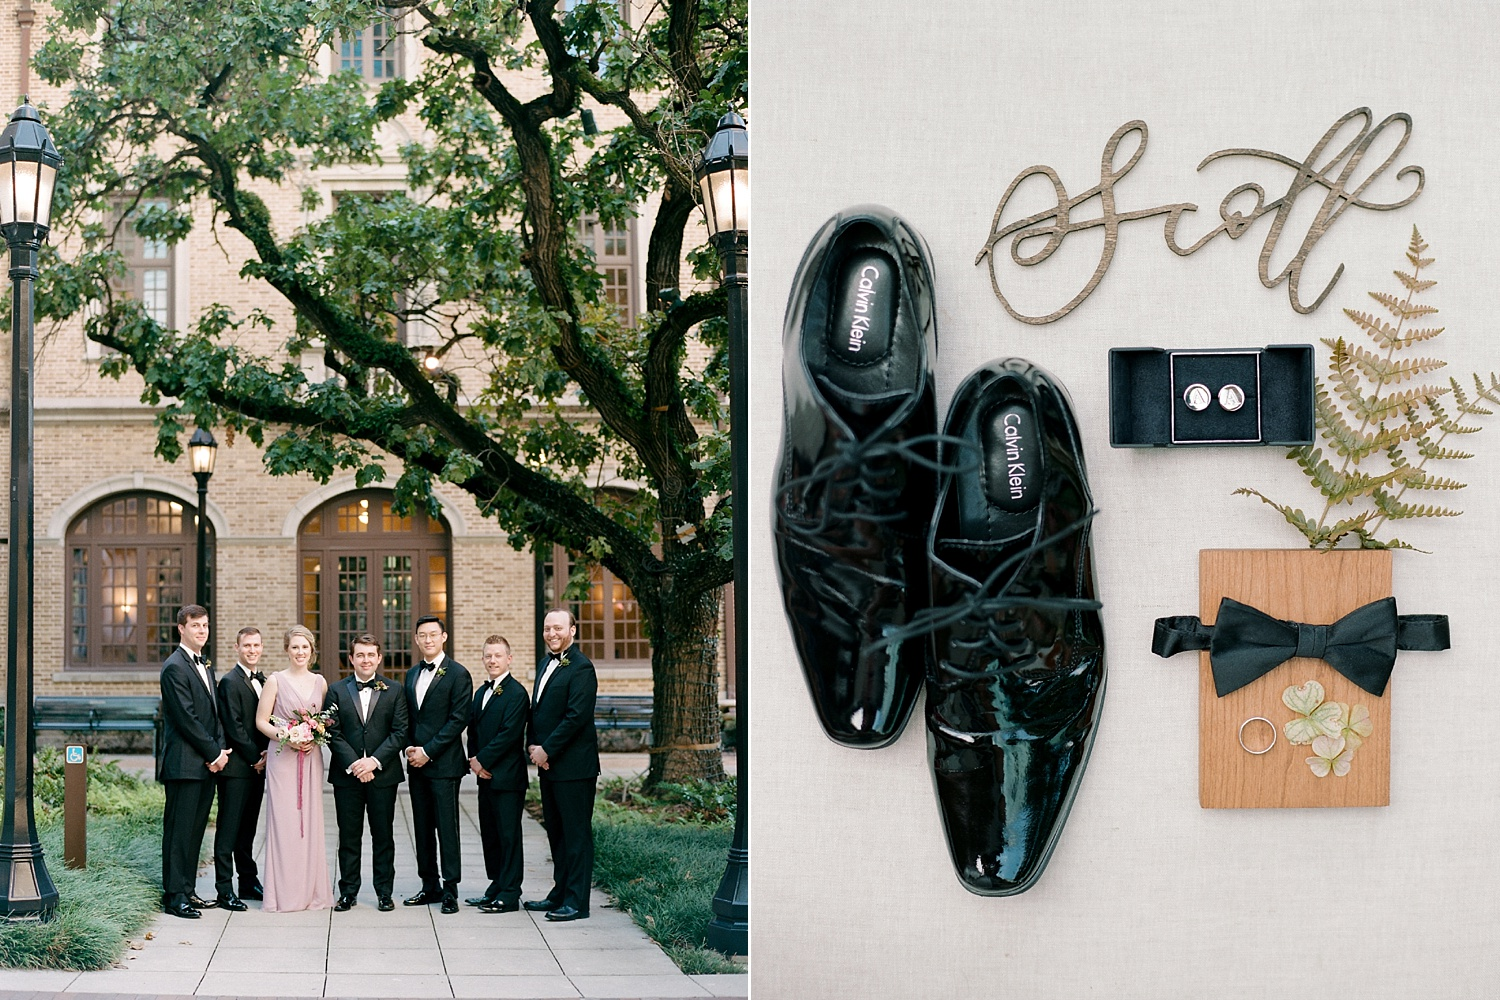 Julia-Ideson-Library-Wedding-Houston-Wedding-Photographer-Fine-Art-Film-Best-Top-Dana-Fernandez-Photography-Wedding-Venue-102.jpg